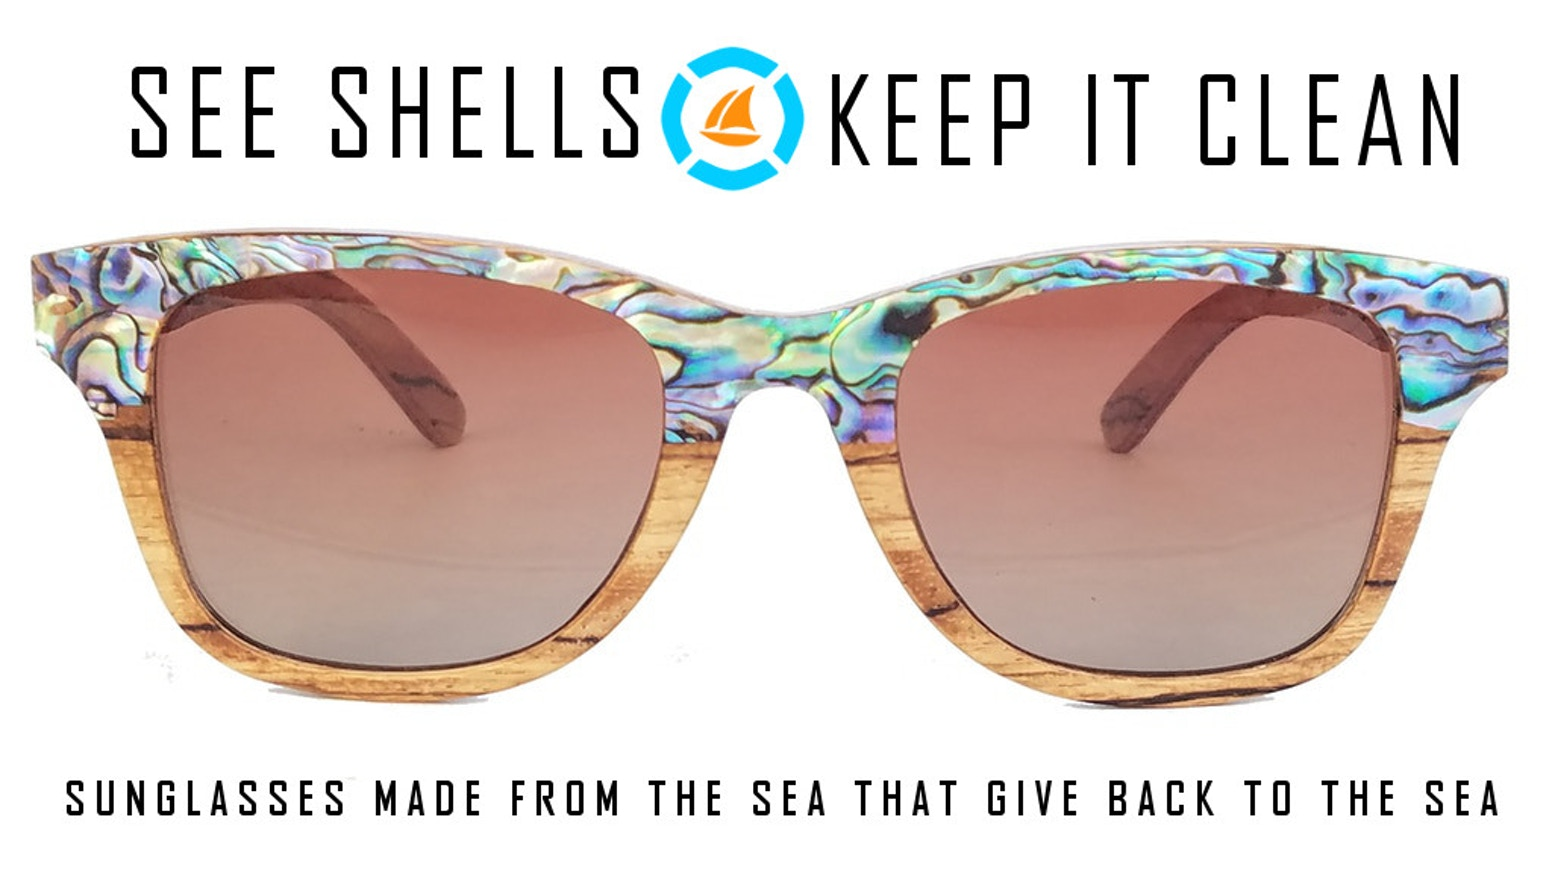 We're live on our 2nd Kickstarter! New See Shells V2 x Keep It Clean Project is in effect, go check it out while early bird is still available!